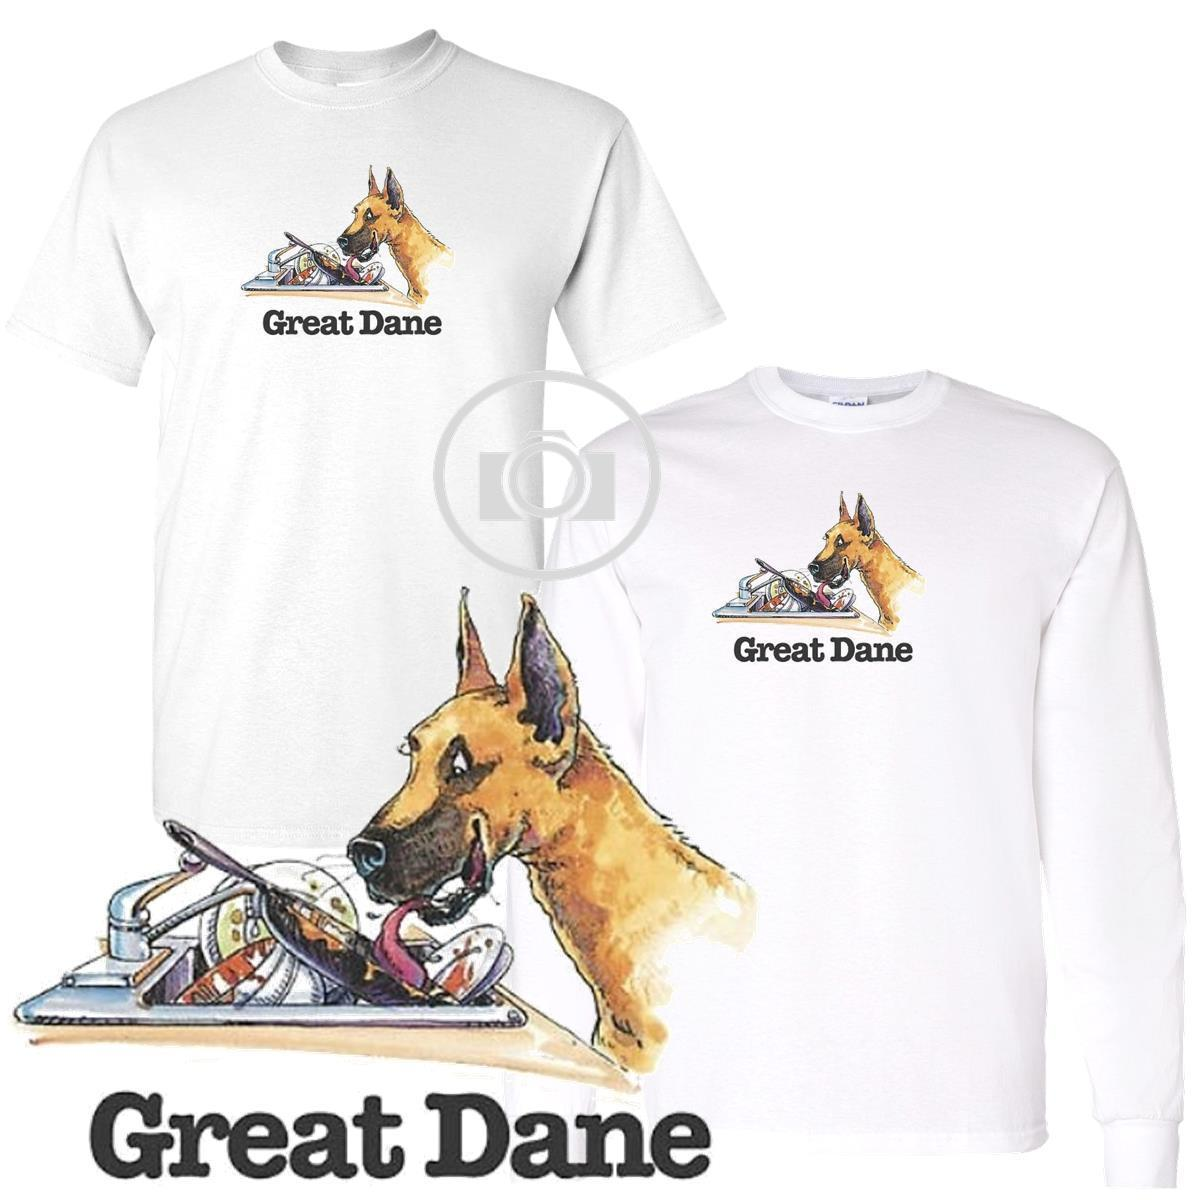 70eefb63 Great Dane Fun Dog Breed Cartoon Short / Long Sleeve White T Shirt M 3X Men  Women Unisex Fashion Tshirt Funny Tee Shirts Online Shopping T Shirts Shop  ...